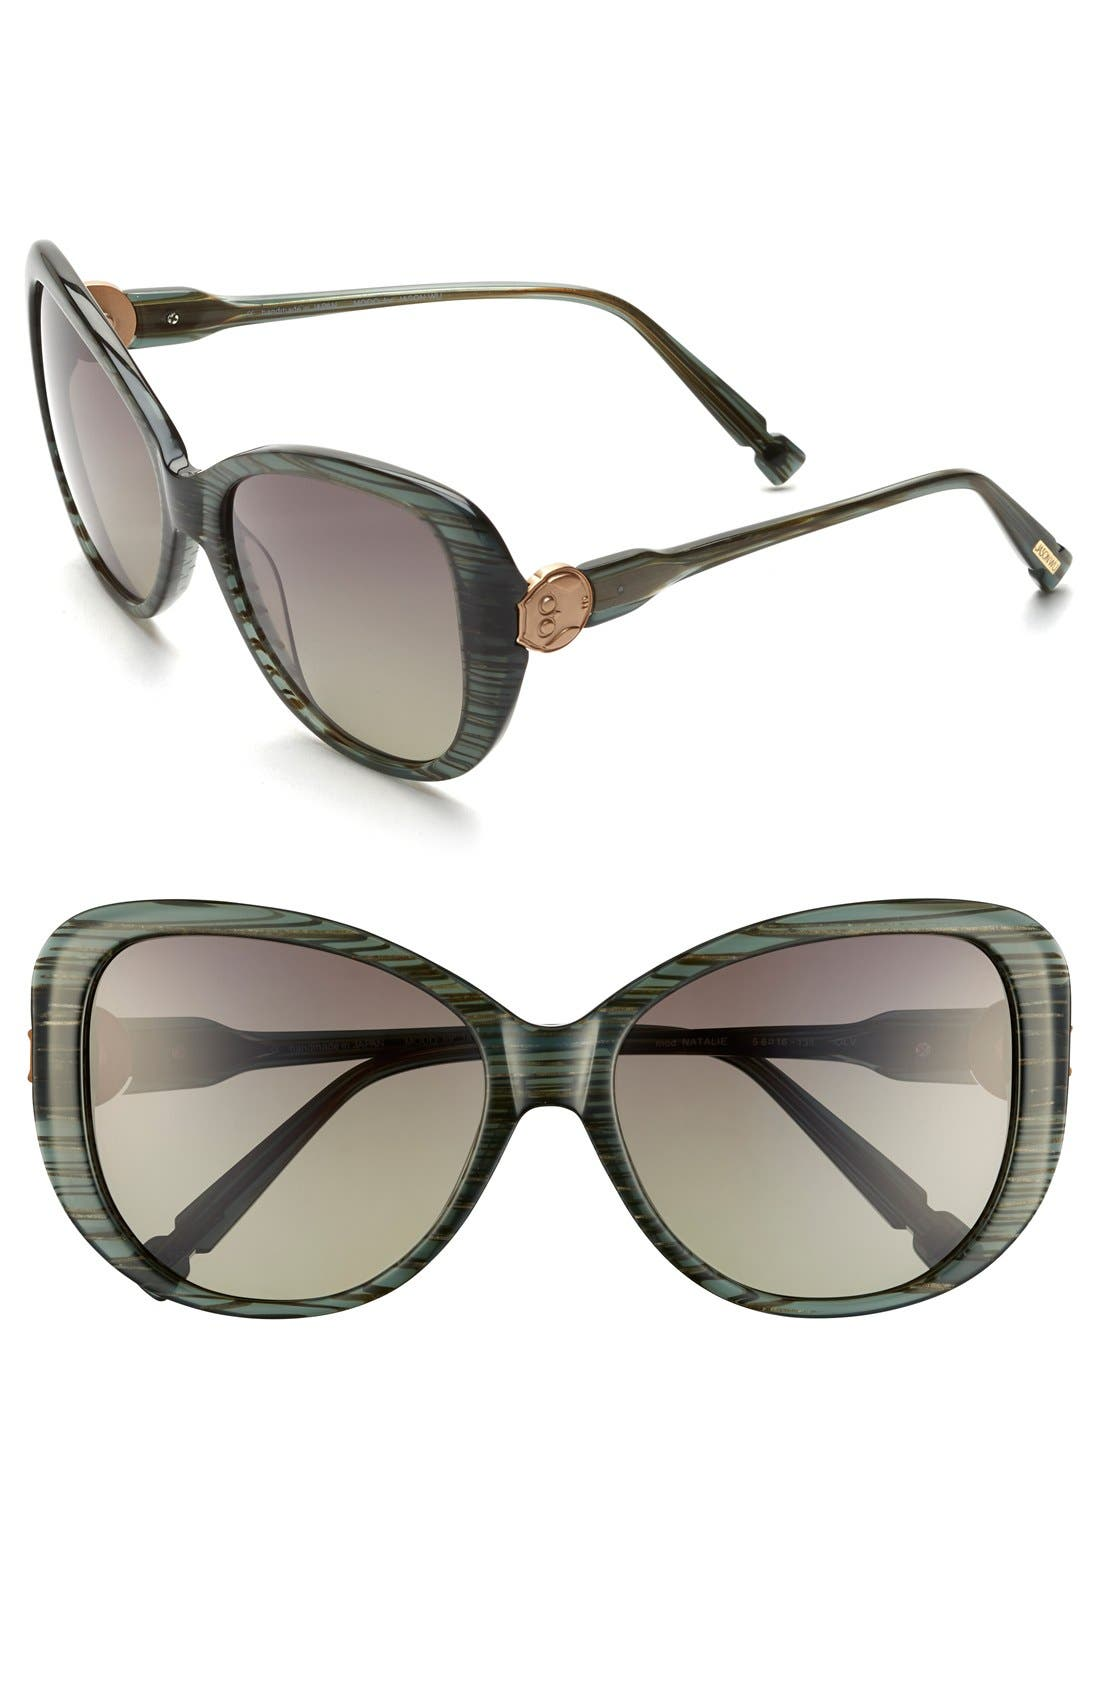 Main Image - Jason Wu 'Natalie' 56mm Sunglasses